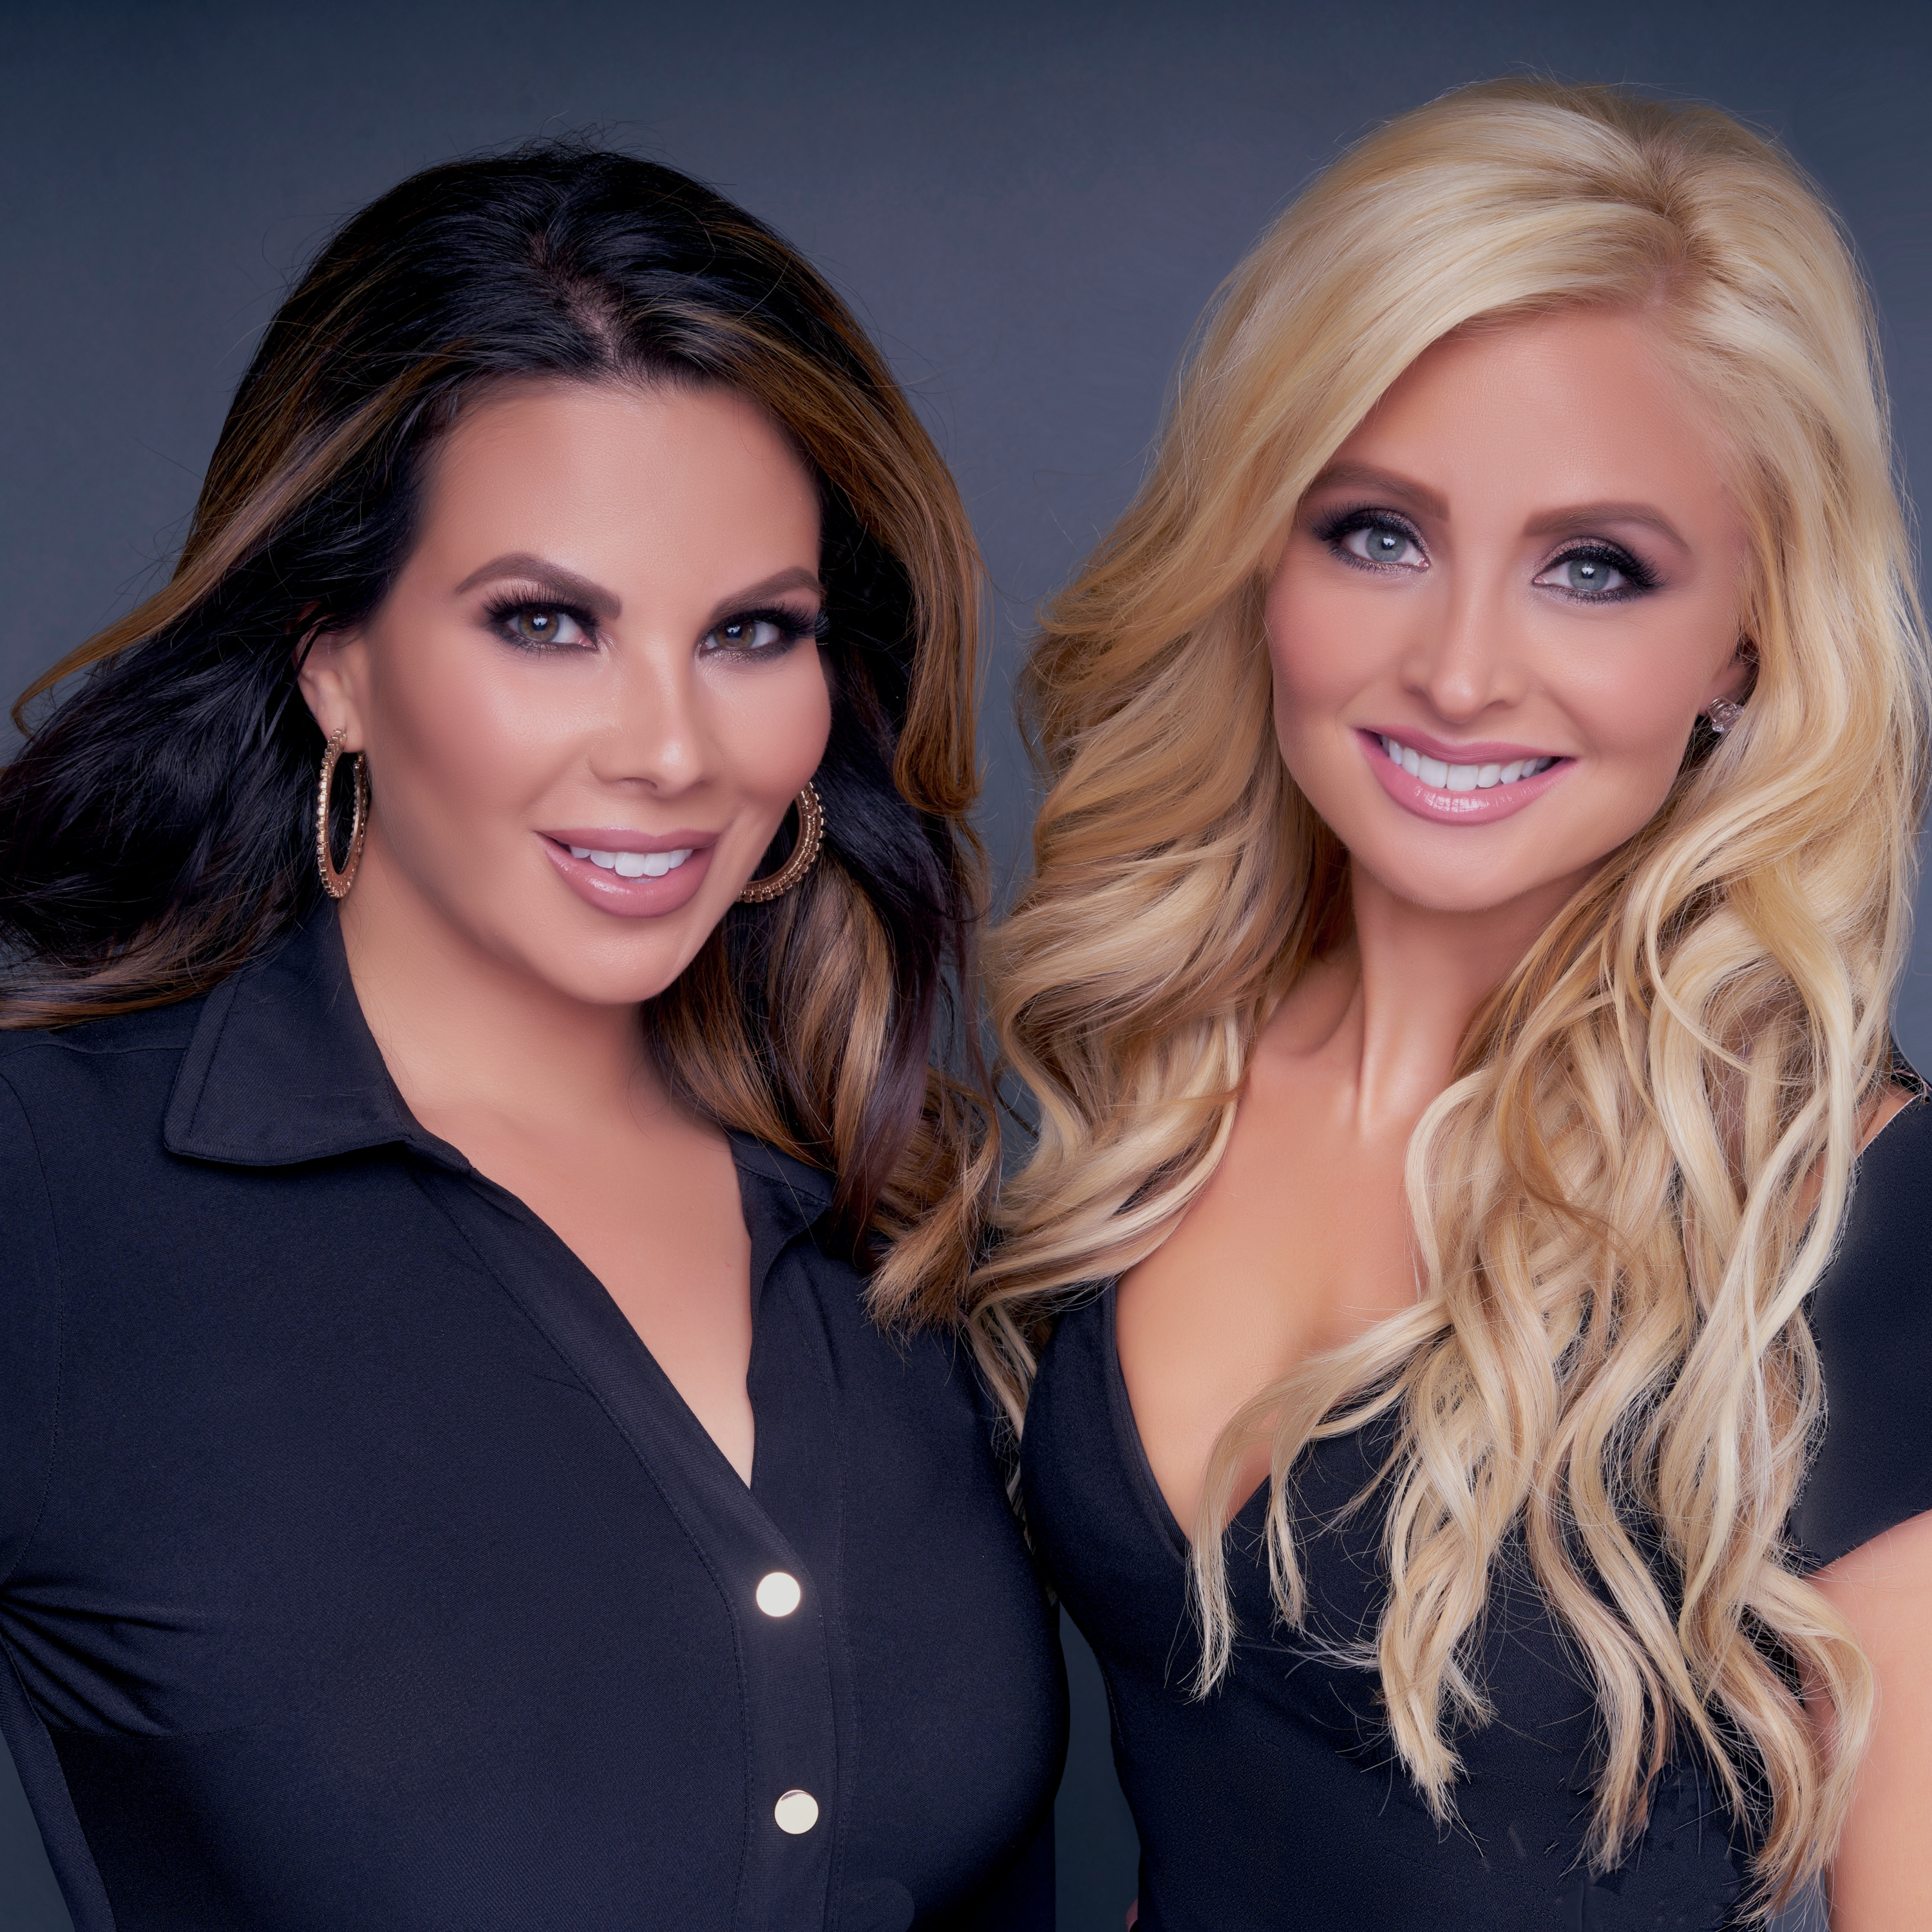 Don't Quit and You Will Persevere with The Founders of Blonde Raven Strategies - Lisa Remillard and Nichelle Medina